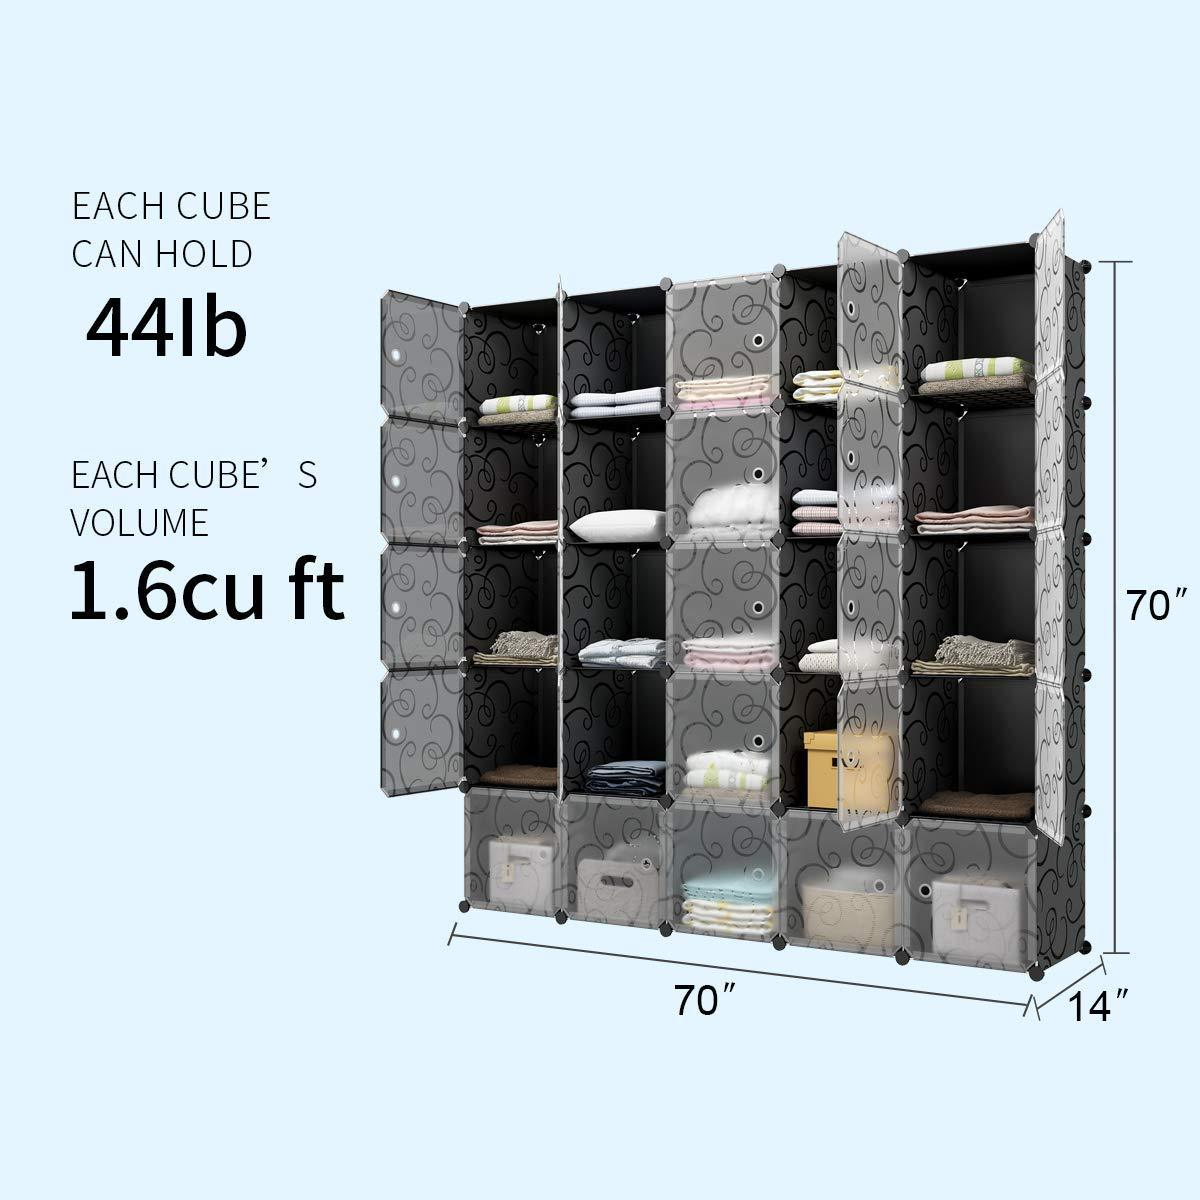 Top rated kousi cube organizer storage cubes organizers and storage storage cube cube storage shelves cubby shelving storage cabinet toy organizer cabinet black 25 cubes